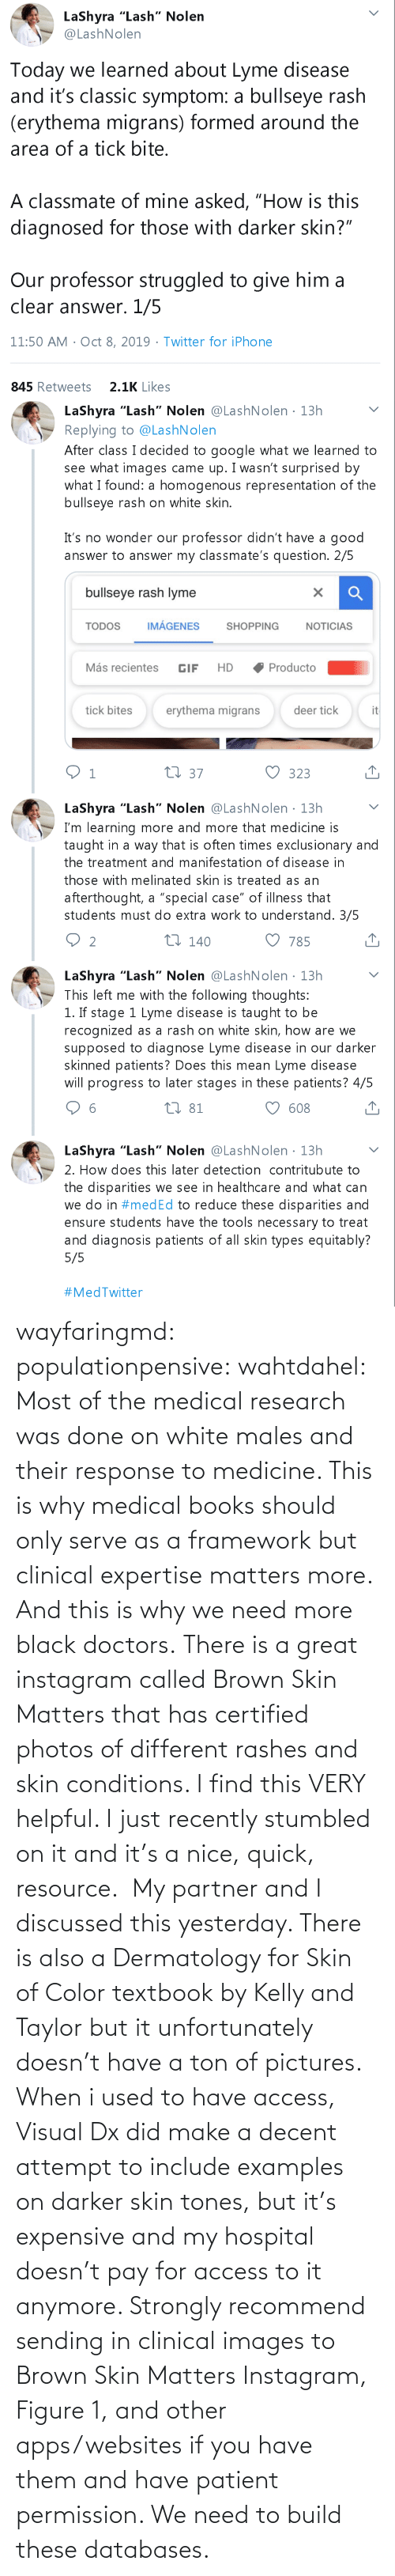 Books, Instagram, and Tumblr: wayfaringmd: populationpensive:  wahtdahel:  Most of the medical research was done on white males and their response to medicine. This is why medical books should only serve as a framework but clinical expertise matters more. And this is why we need more black doctors.    There is a great instagram called Brown Skin Matters that has certified photos of different rashes and skin conditions. I find this VERY helpful. I just recently stumbled on it and it's a nice, quick, resource.     My partner and I discussed this yesterday. There is also a Dermatology for Skin of Color textbook by Kelly and Taylor but it unfortunately doesn't have a ton of pictures. When i used to have access, Visual Dx did make a decent attempt to include examples on darker skin tones, but it's expensive and my hospital doesn't pay for access to it anymore. Strongly recommend sending in clinical images to Brown Skin Matters Instagram, Figure 1, and other apps/websites if you have them and have patient permission. We need to build these databases.